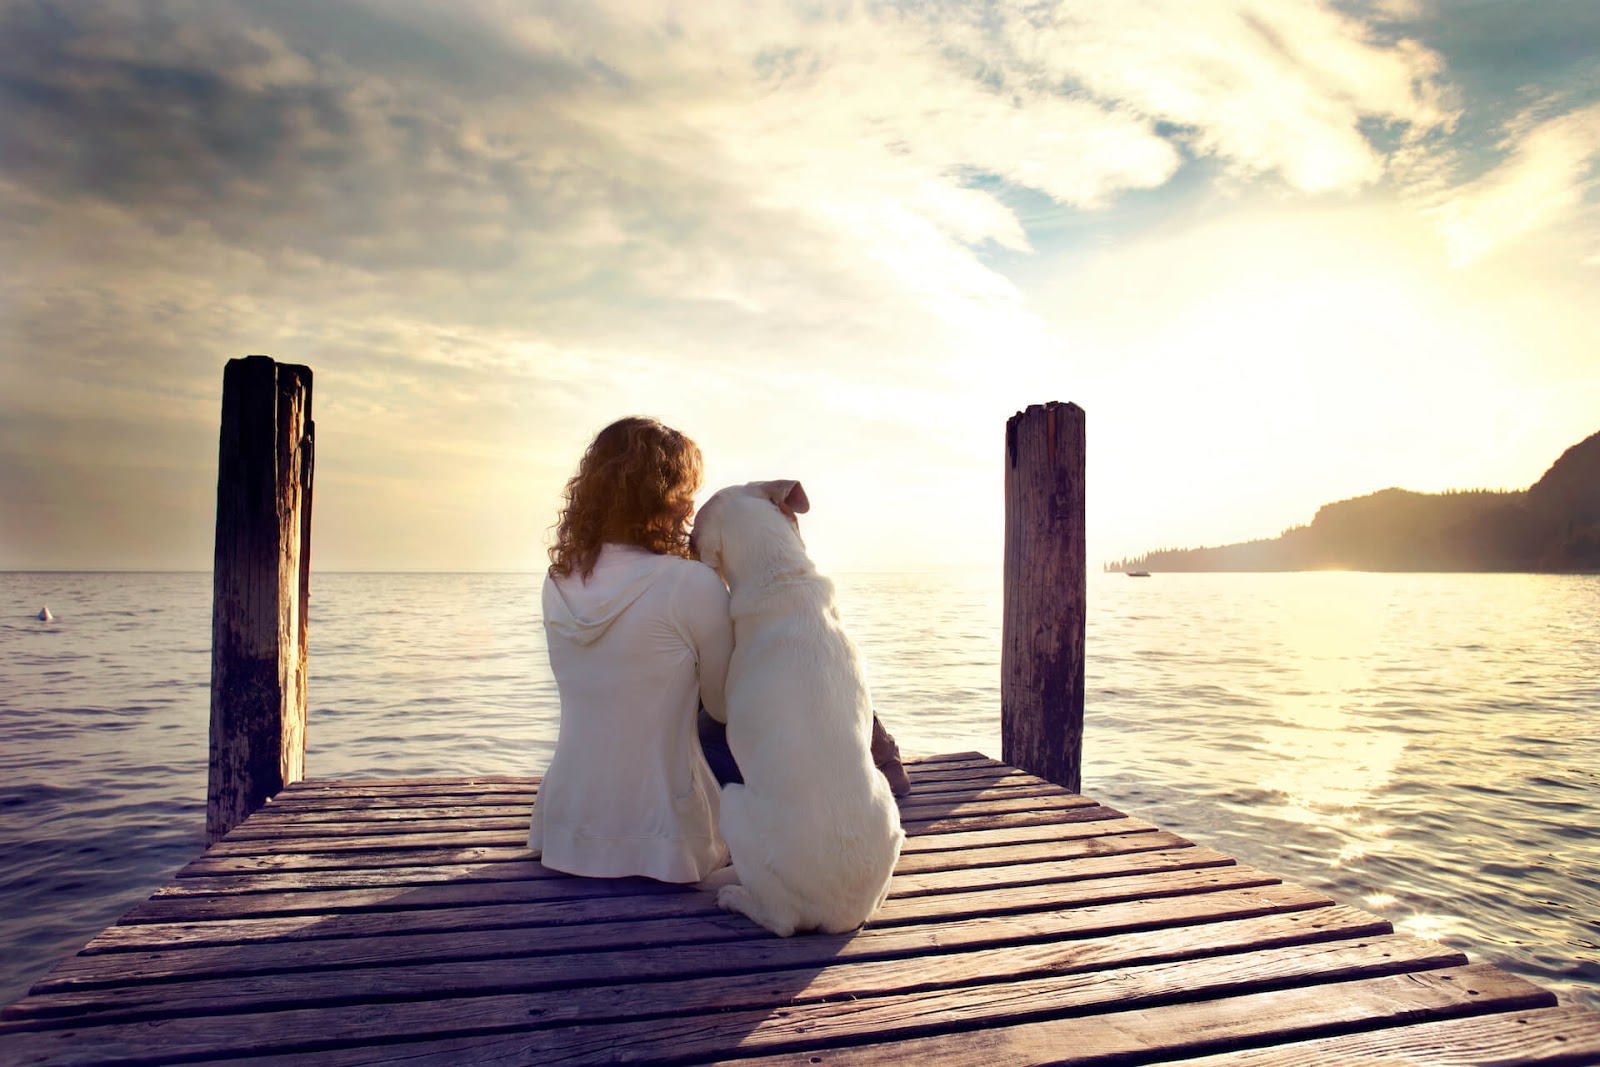 Woman snuggling with her dog on a dock overlooking a beautiful view